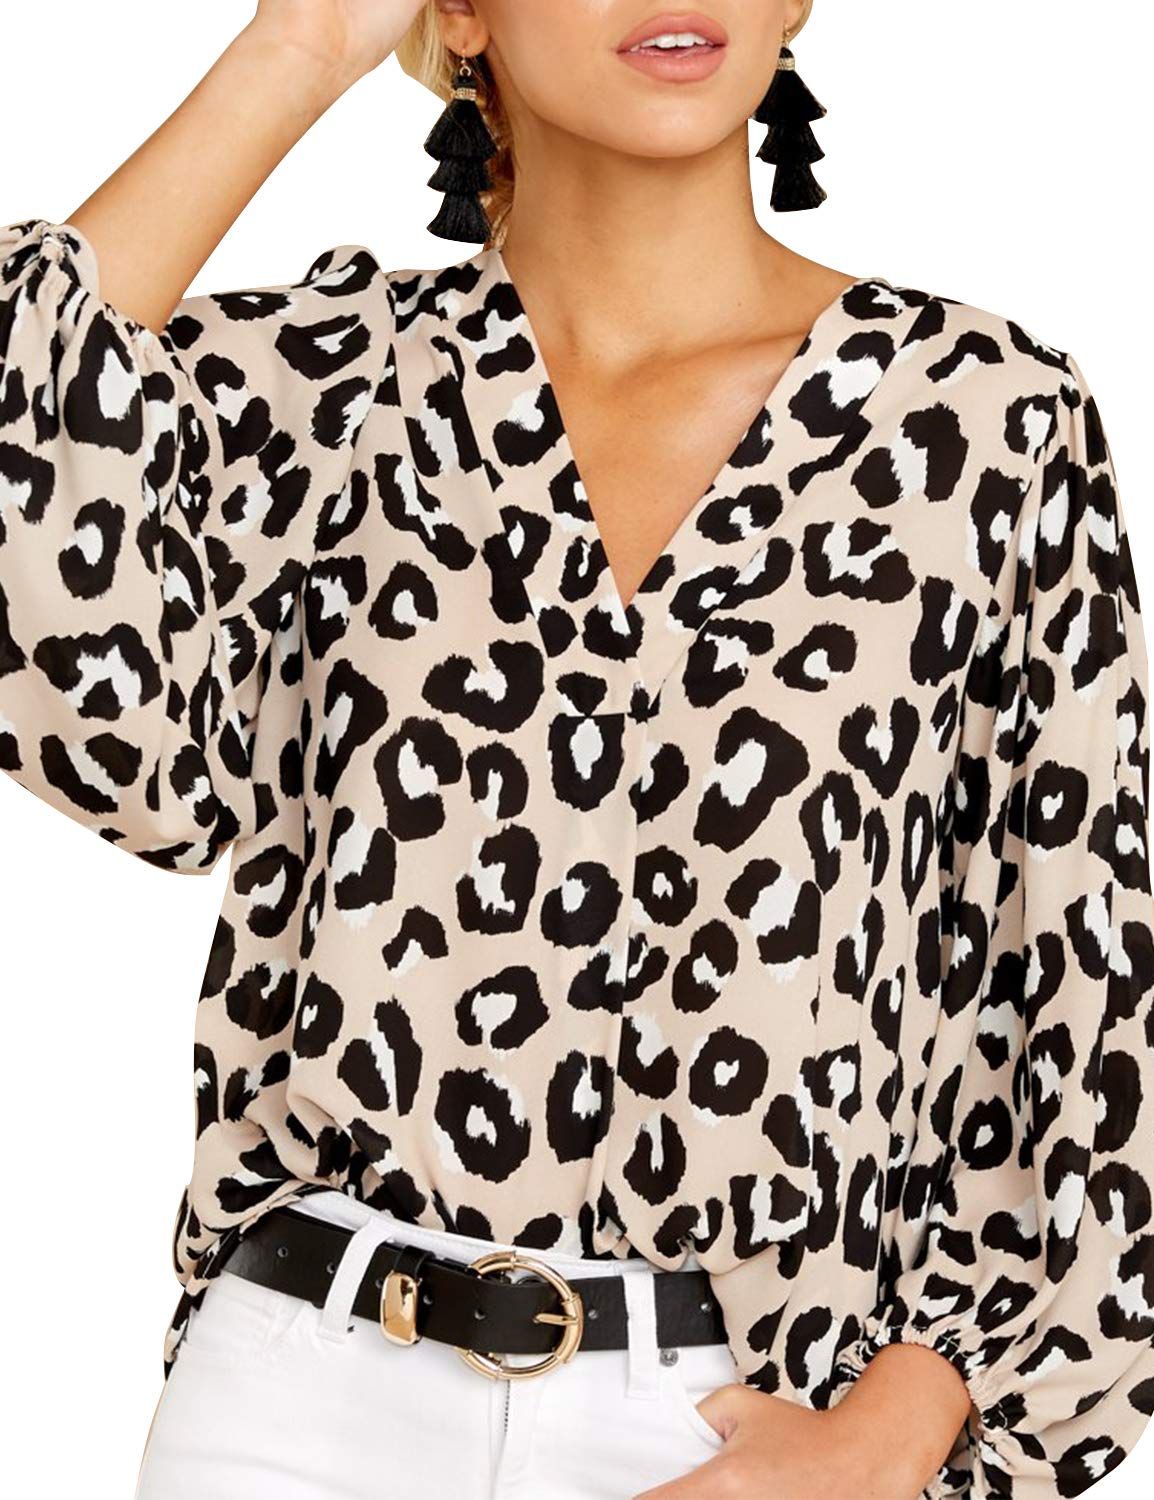 BMJL Women's Leopard Print Top V Neck Shirt Lantern Sleeved Blouse Oversized